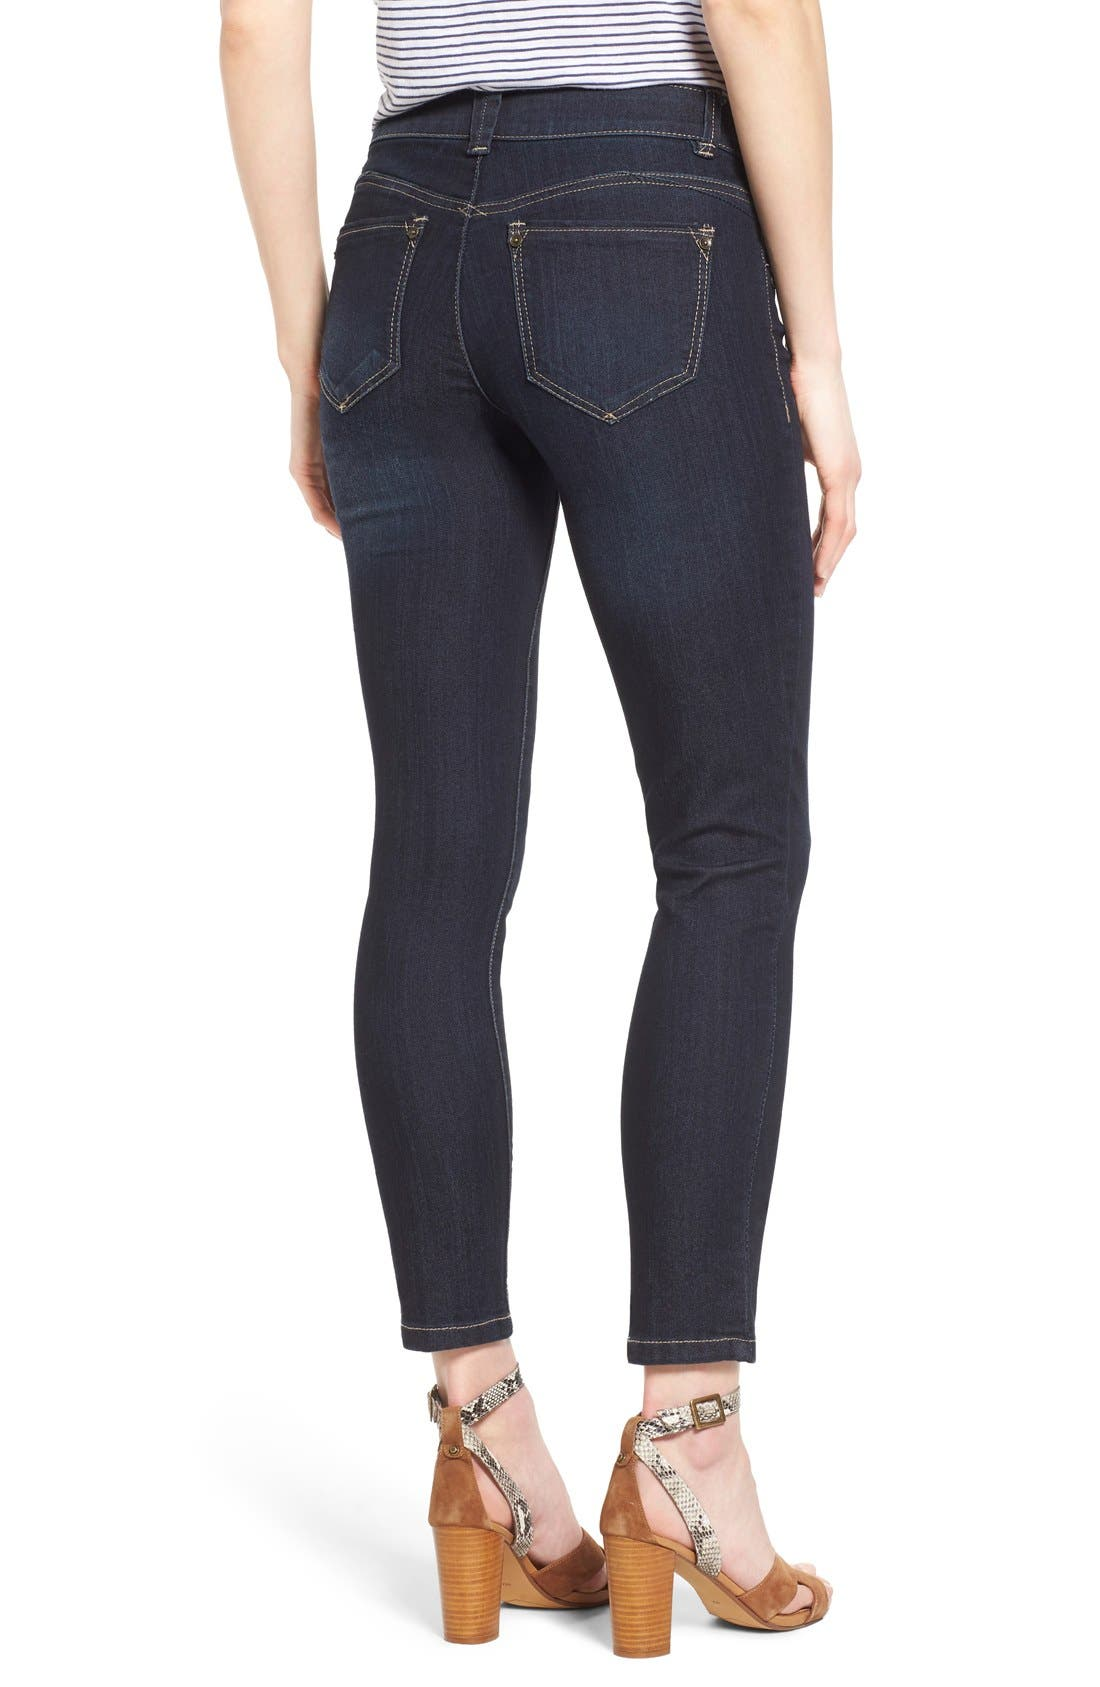 Alternate Image 2  - Wit & Wisdom 'Ab Solution' Stretch Ankle Skinny Jeans (Regular & Petite) (Nordstrom Exclusive)